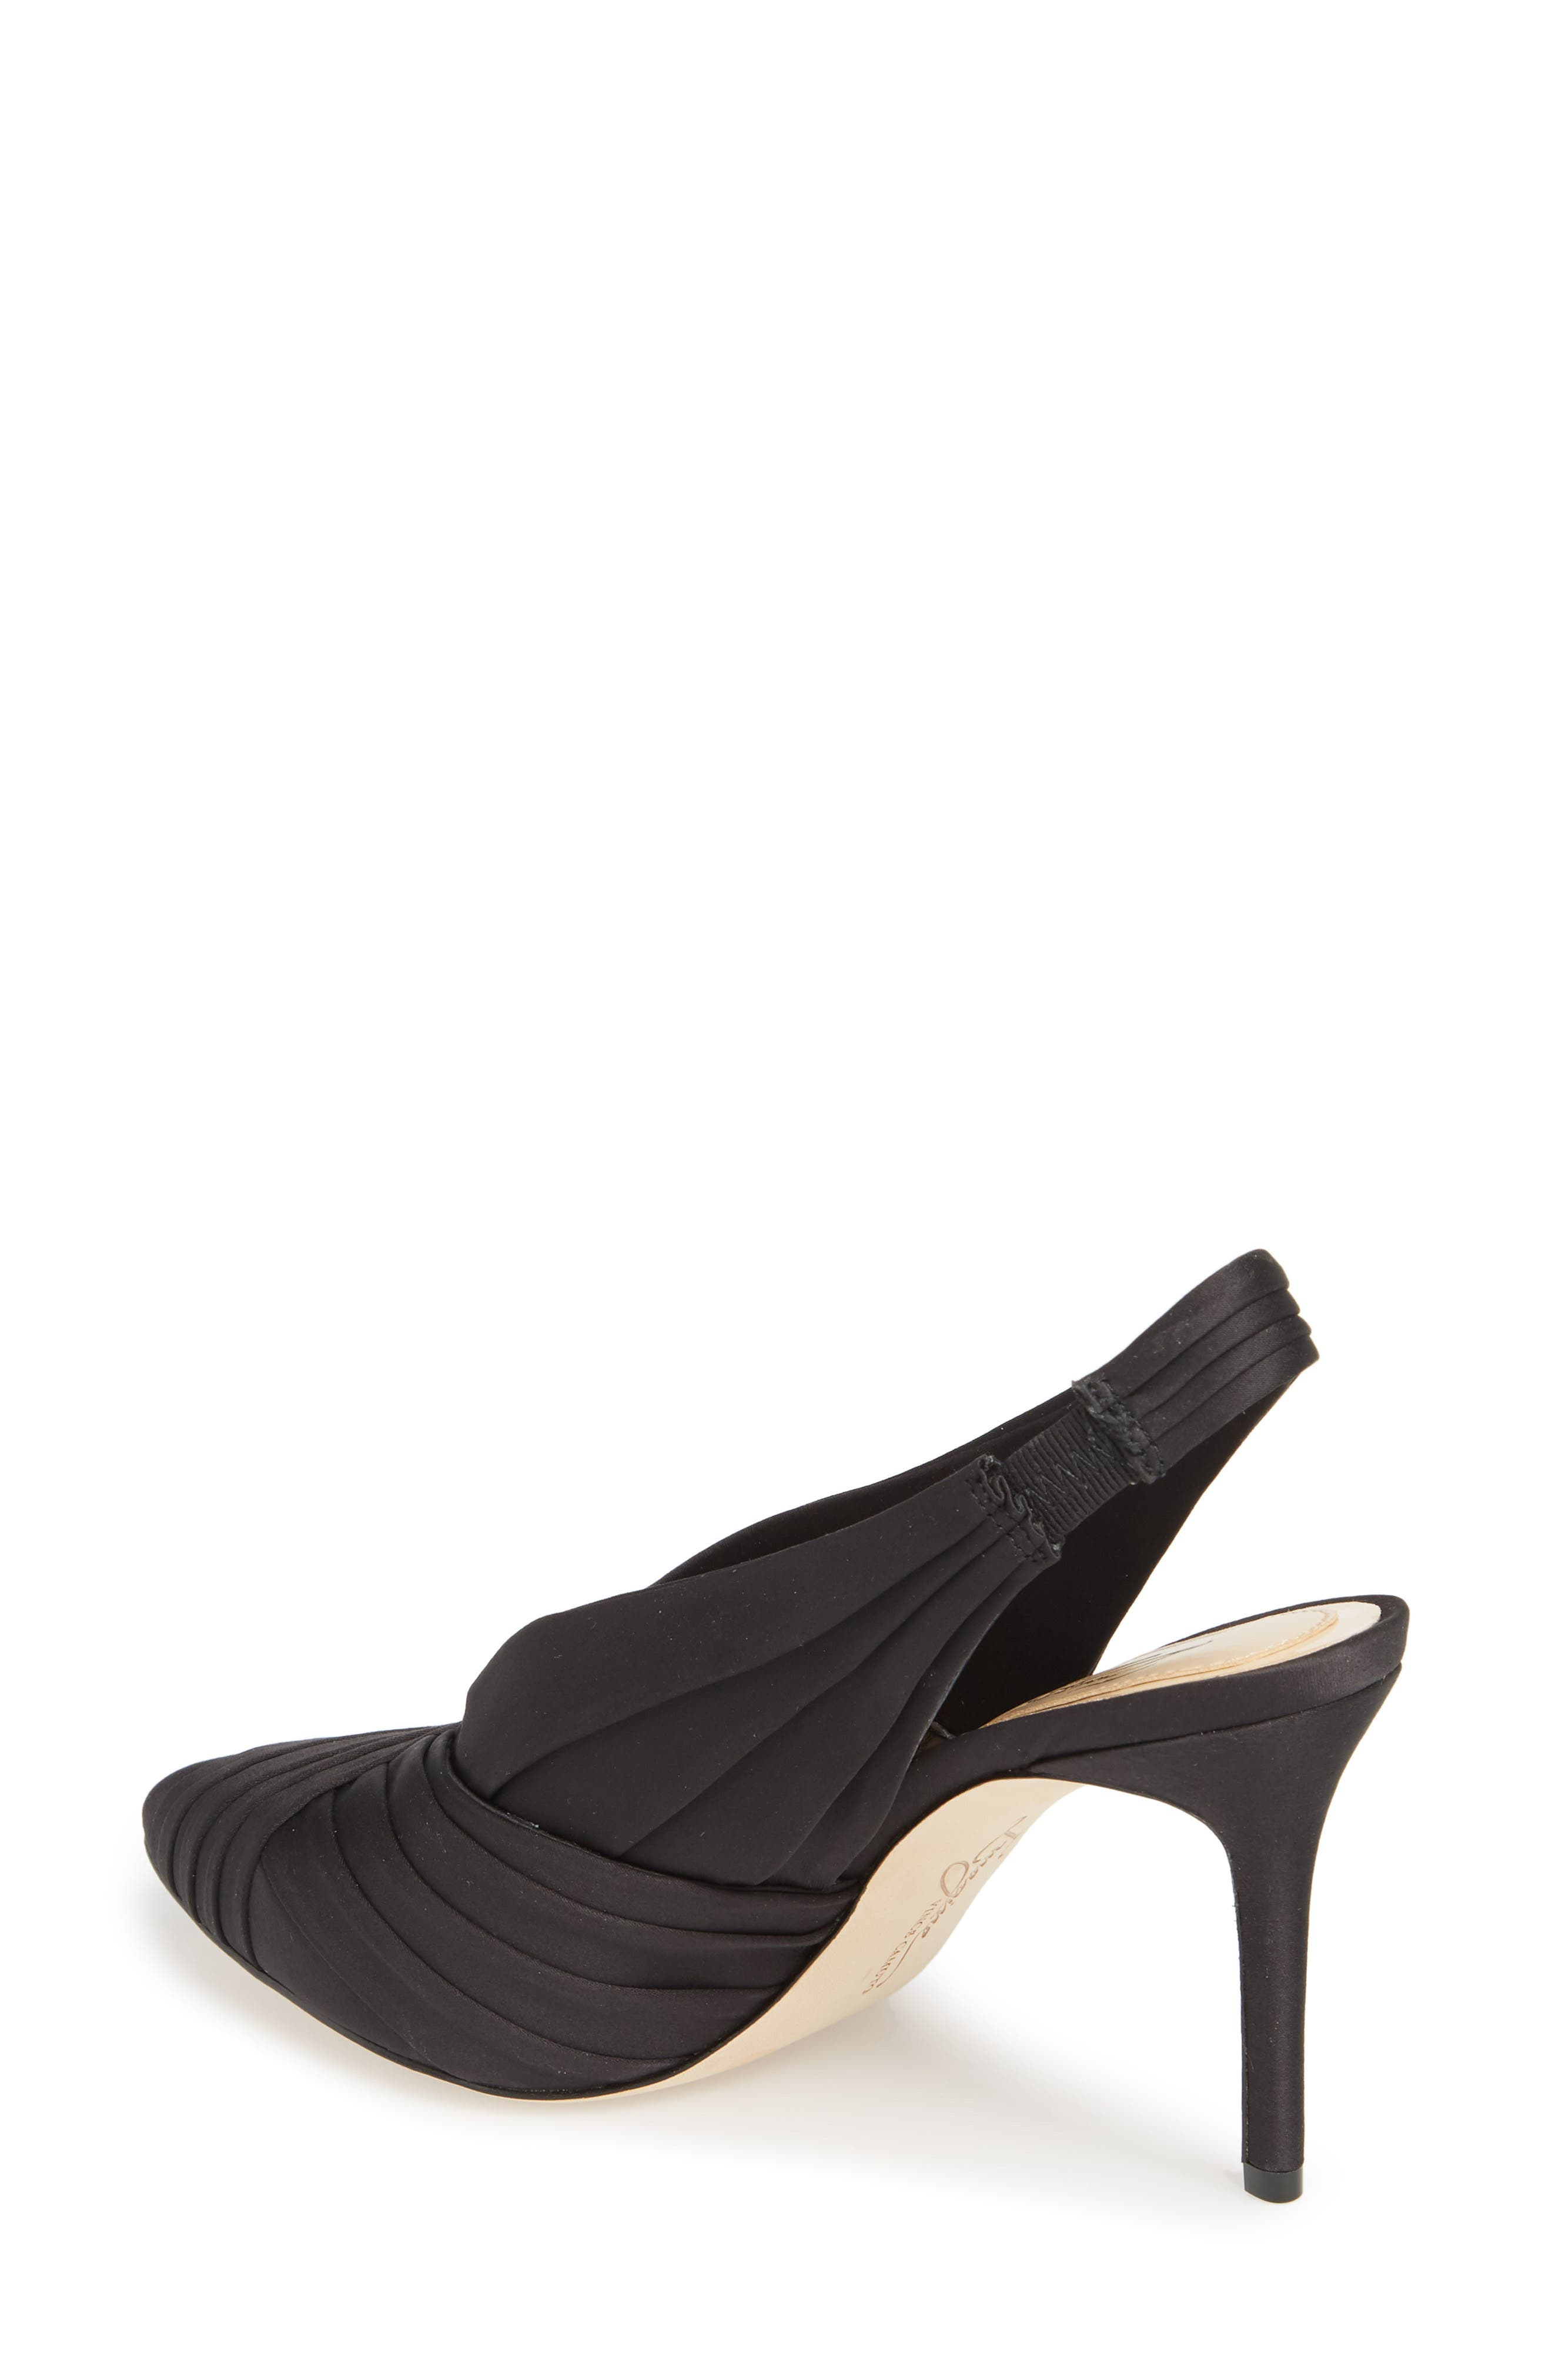 Melkia Pump,                             Alternate thumbnail 2, color,                             BLACK SATIN